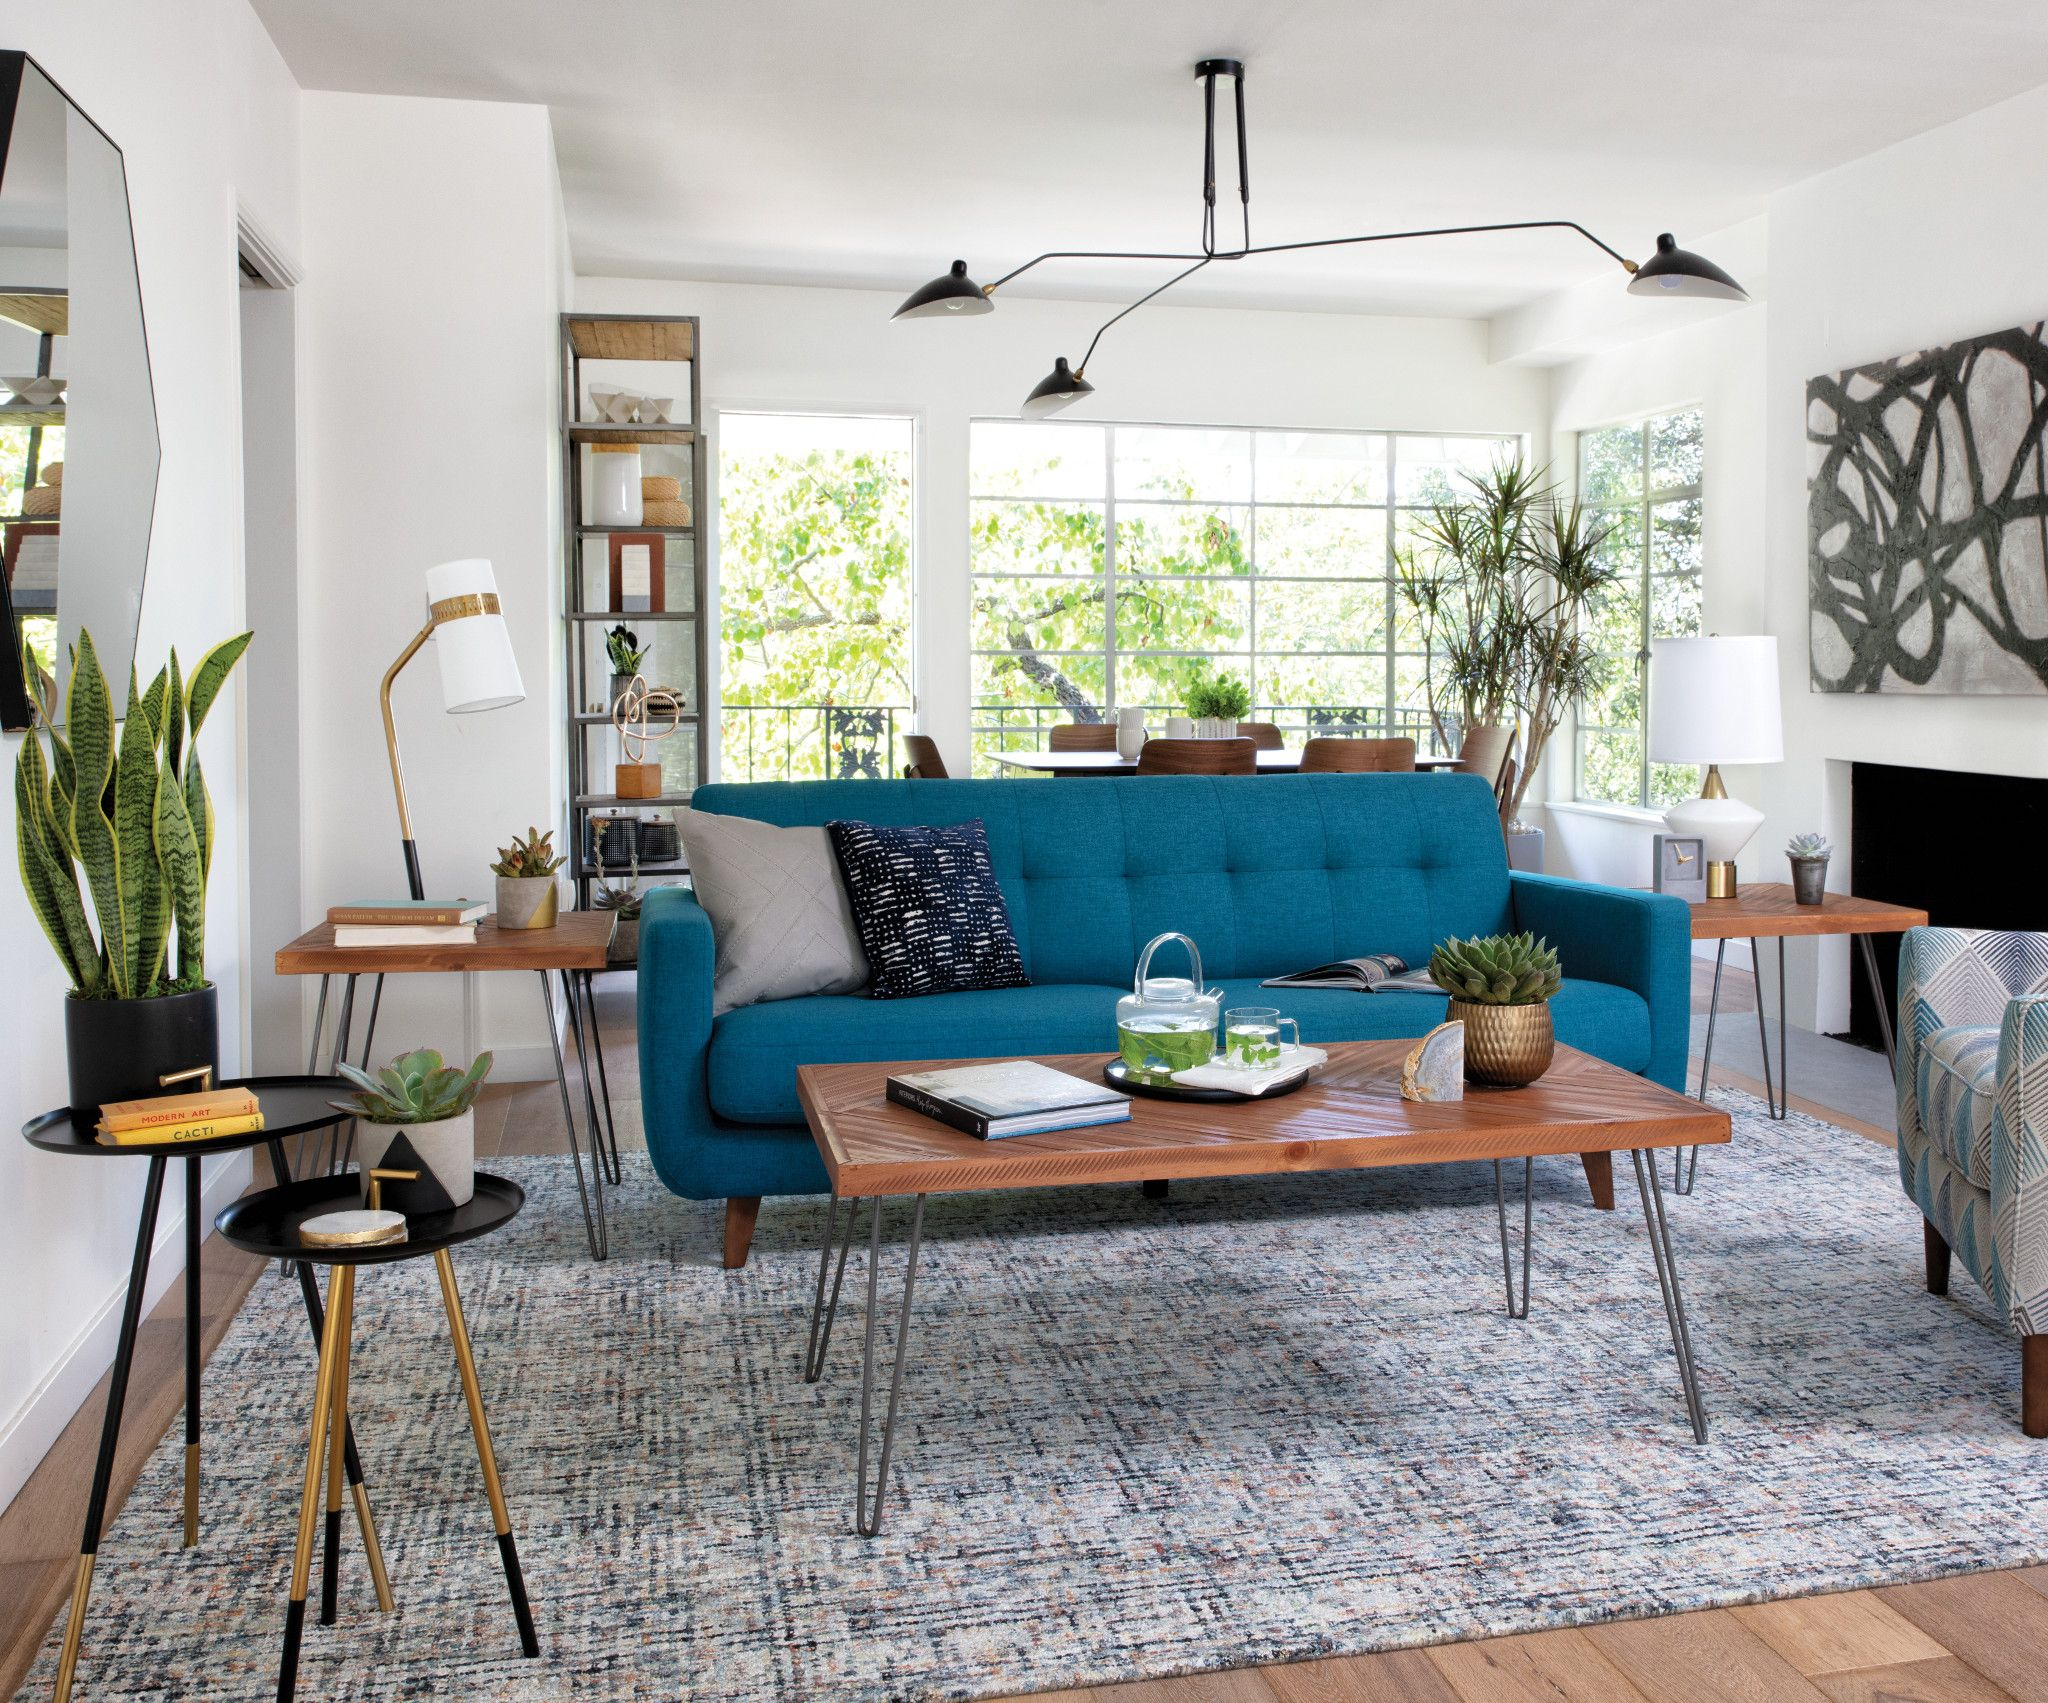 Mid century Modern on a budget never looked so good! in 2019 ...